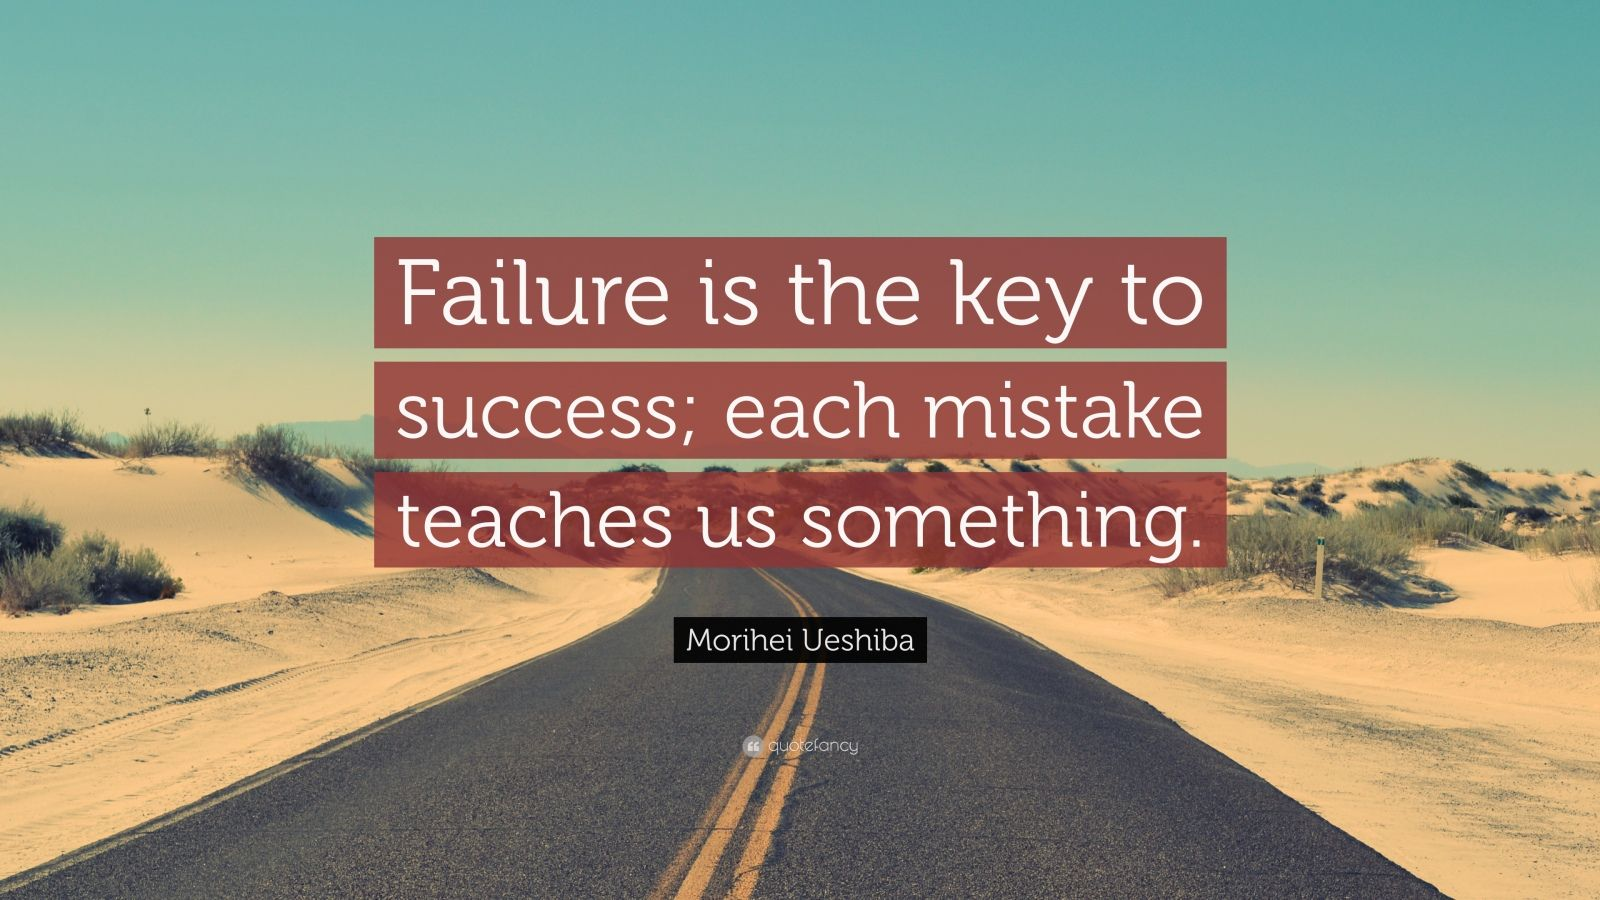 failure is the key to succeed